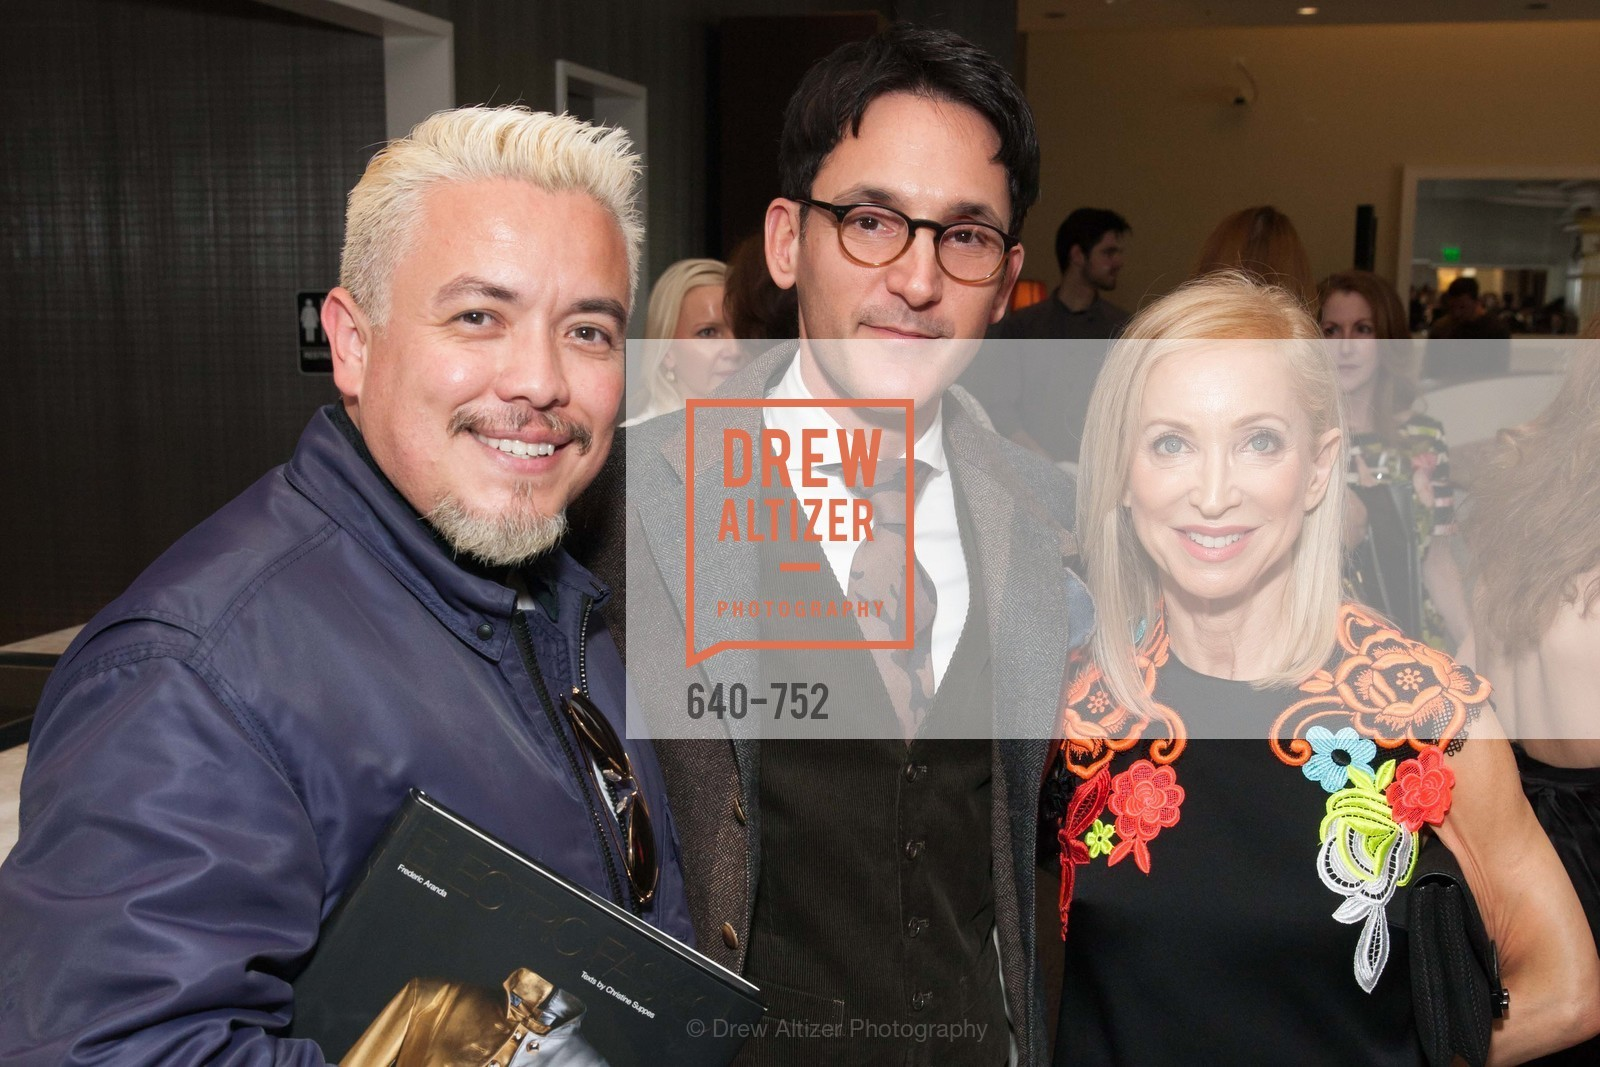 Victor Vargas, James Krohn, Shelley Gordon, Electric Fashion Book Signing with Christine Suppes & Ken Downing at THE ROTUNDA, NEIMAN MARCUS, Neiman Marcus, Rotunda, May 27th, 2015,Drew Altizer, Drew Altizer Photography, full-service agency, private events, San Francisco photographer, photographer california